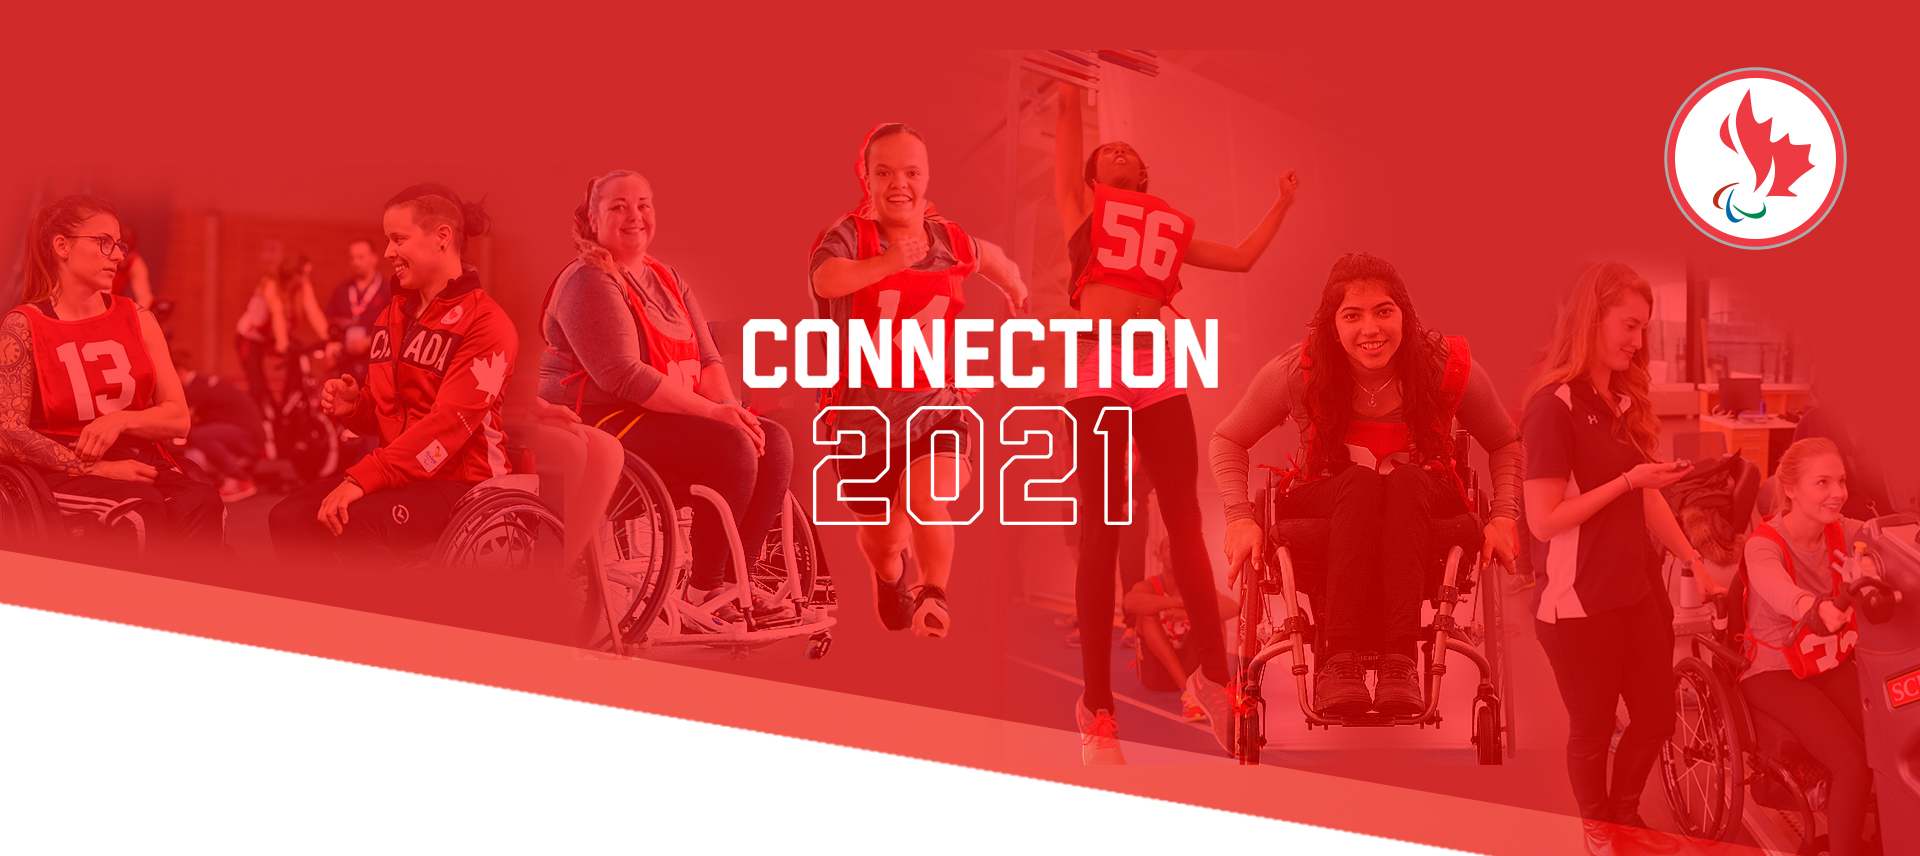 Paralympic athletes are sought after in Canada – RCI